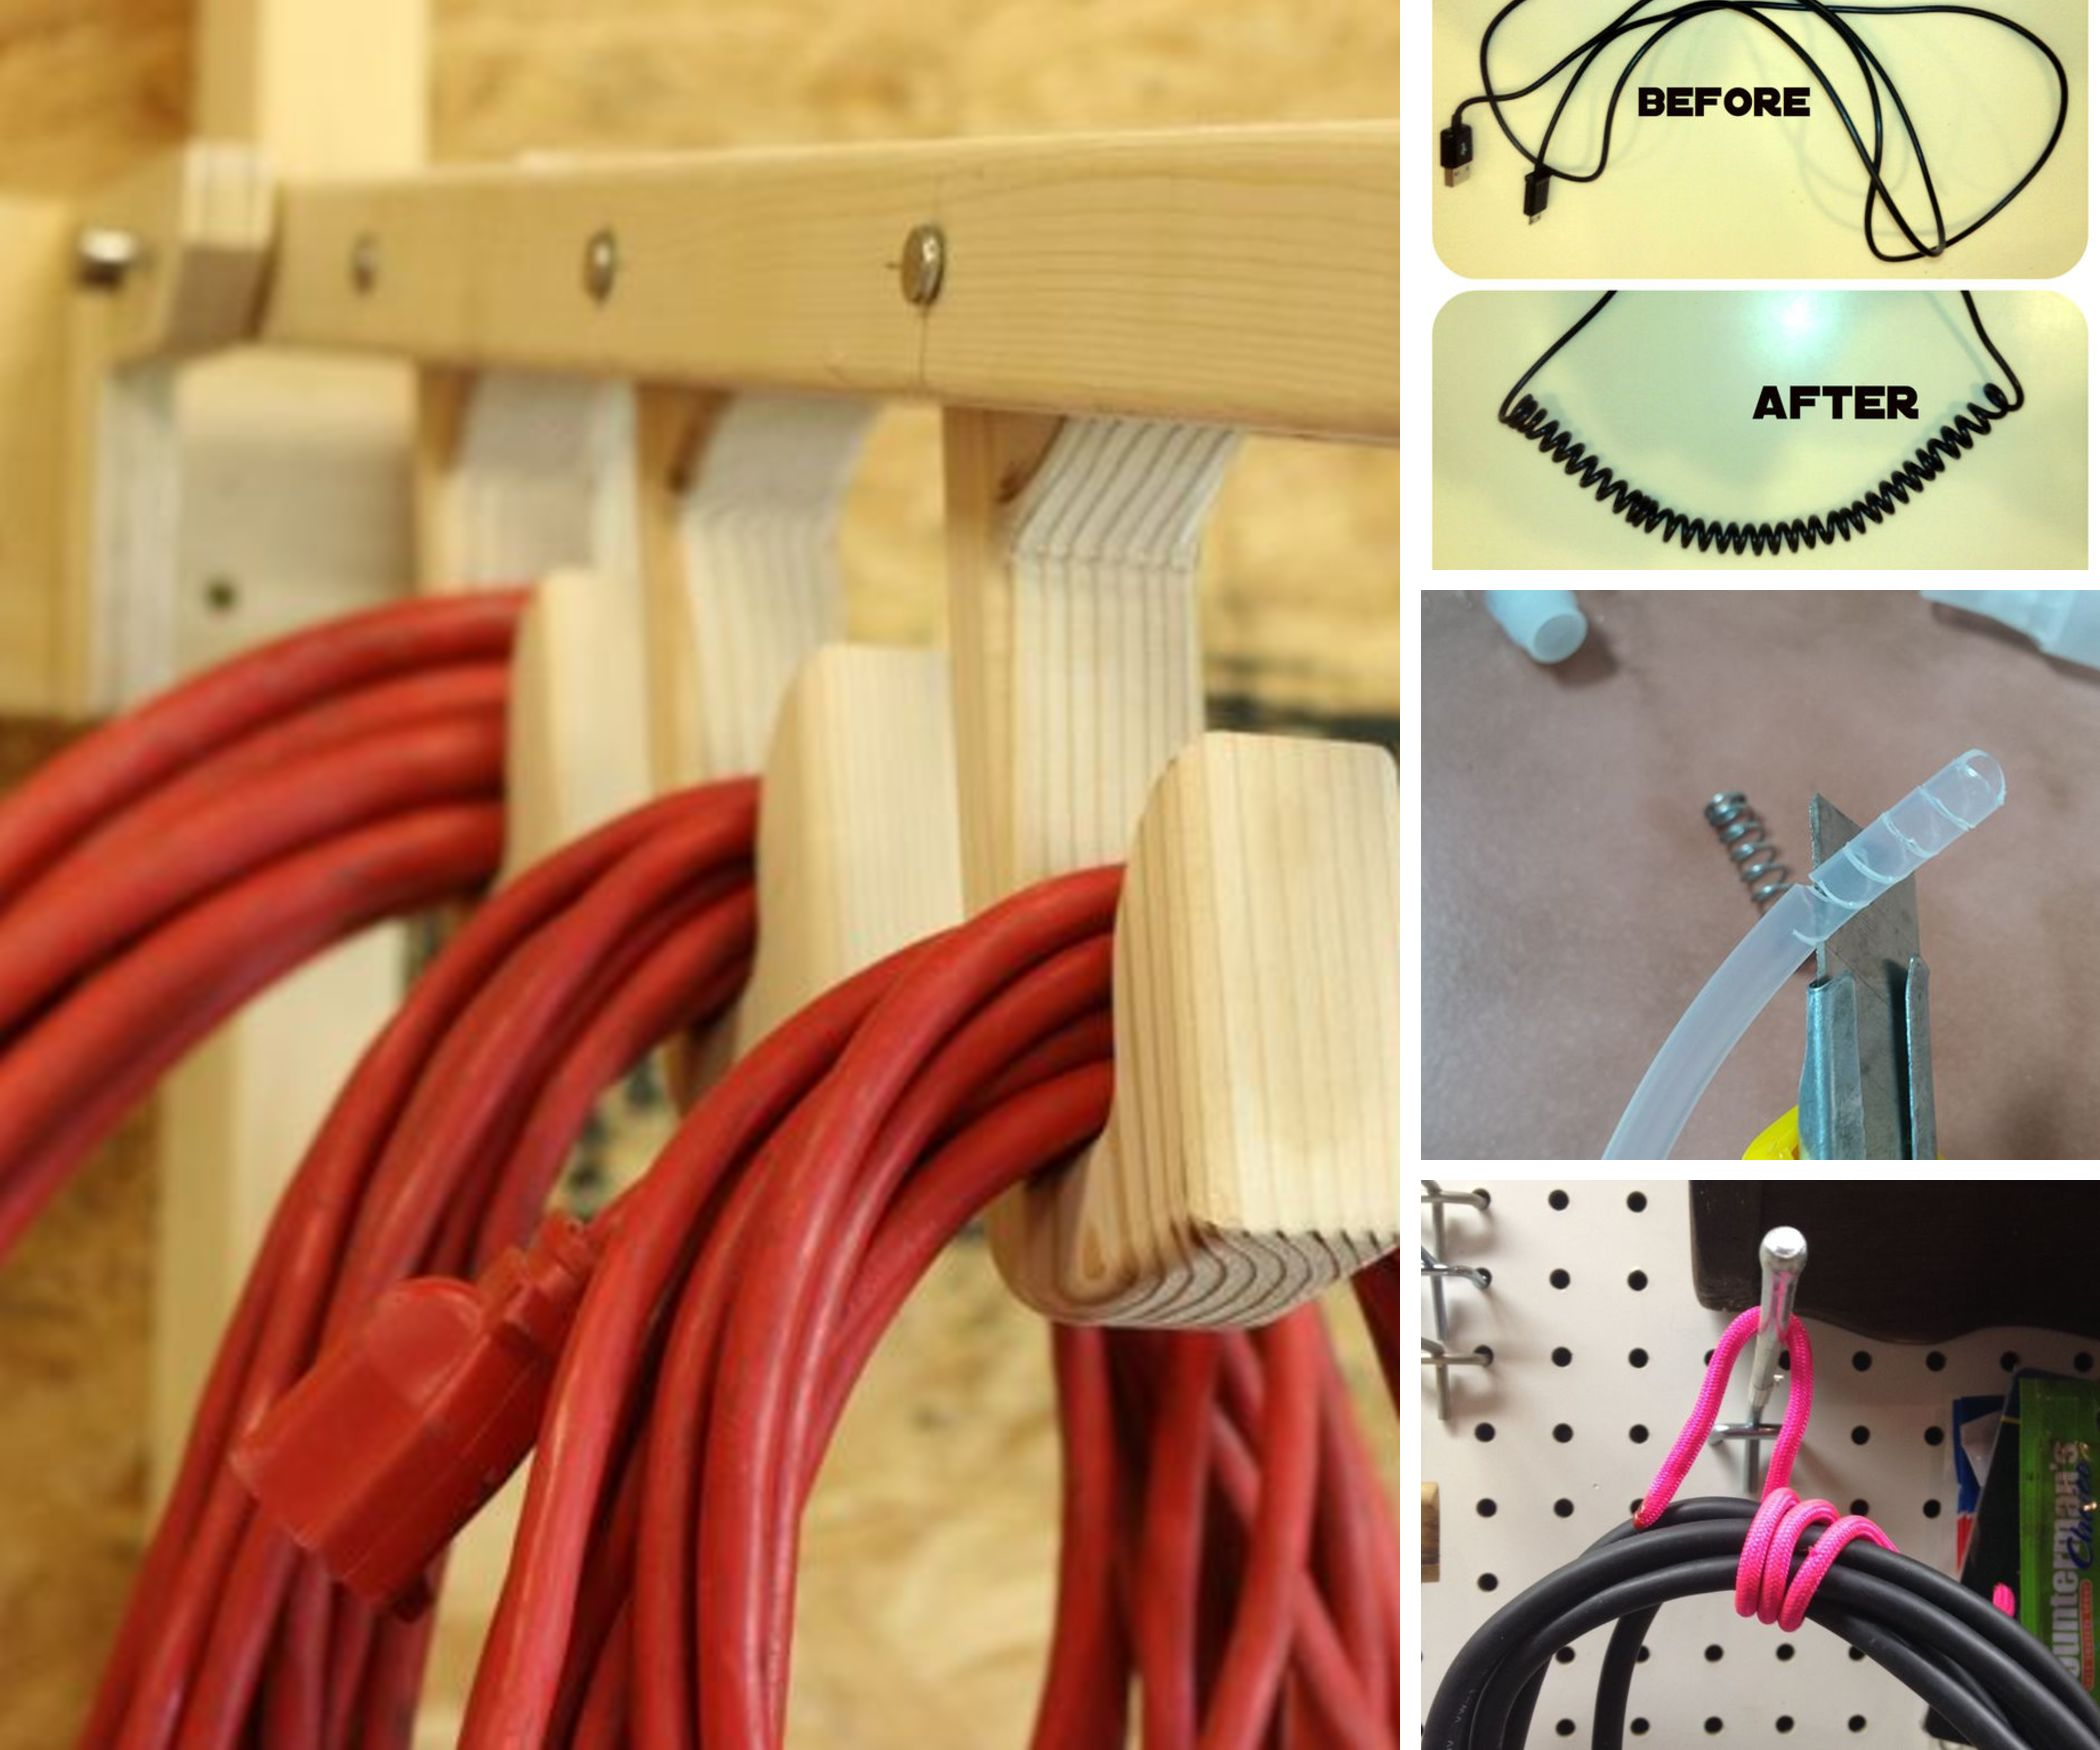 8 Easy Ways to Organize Your Cords